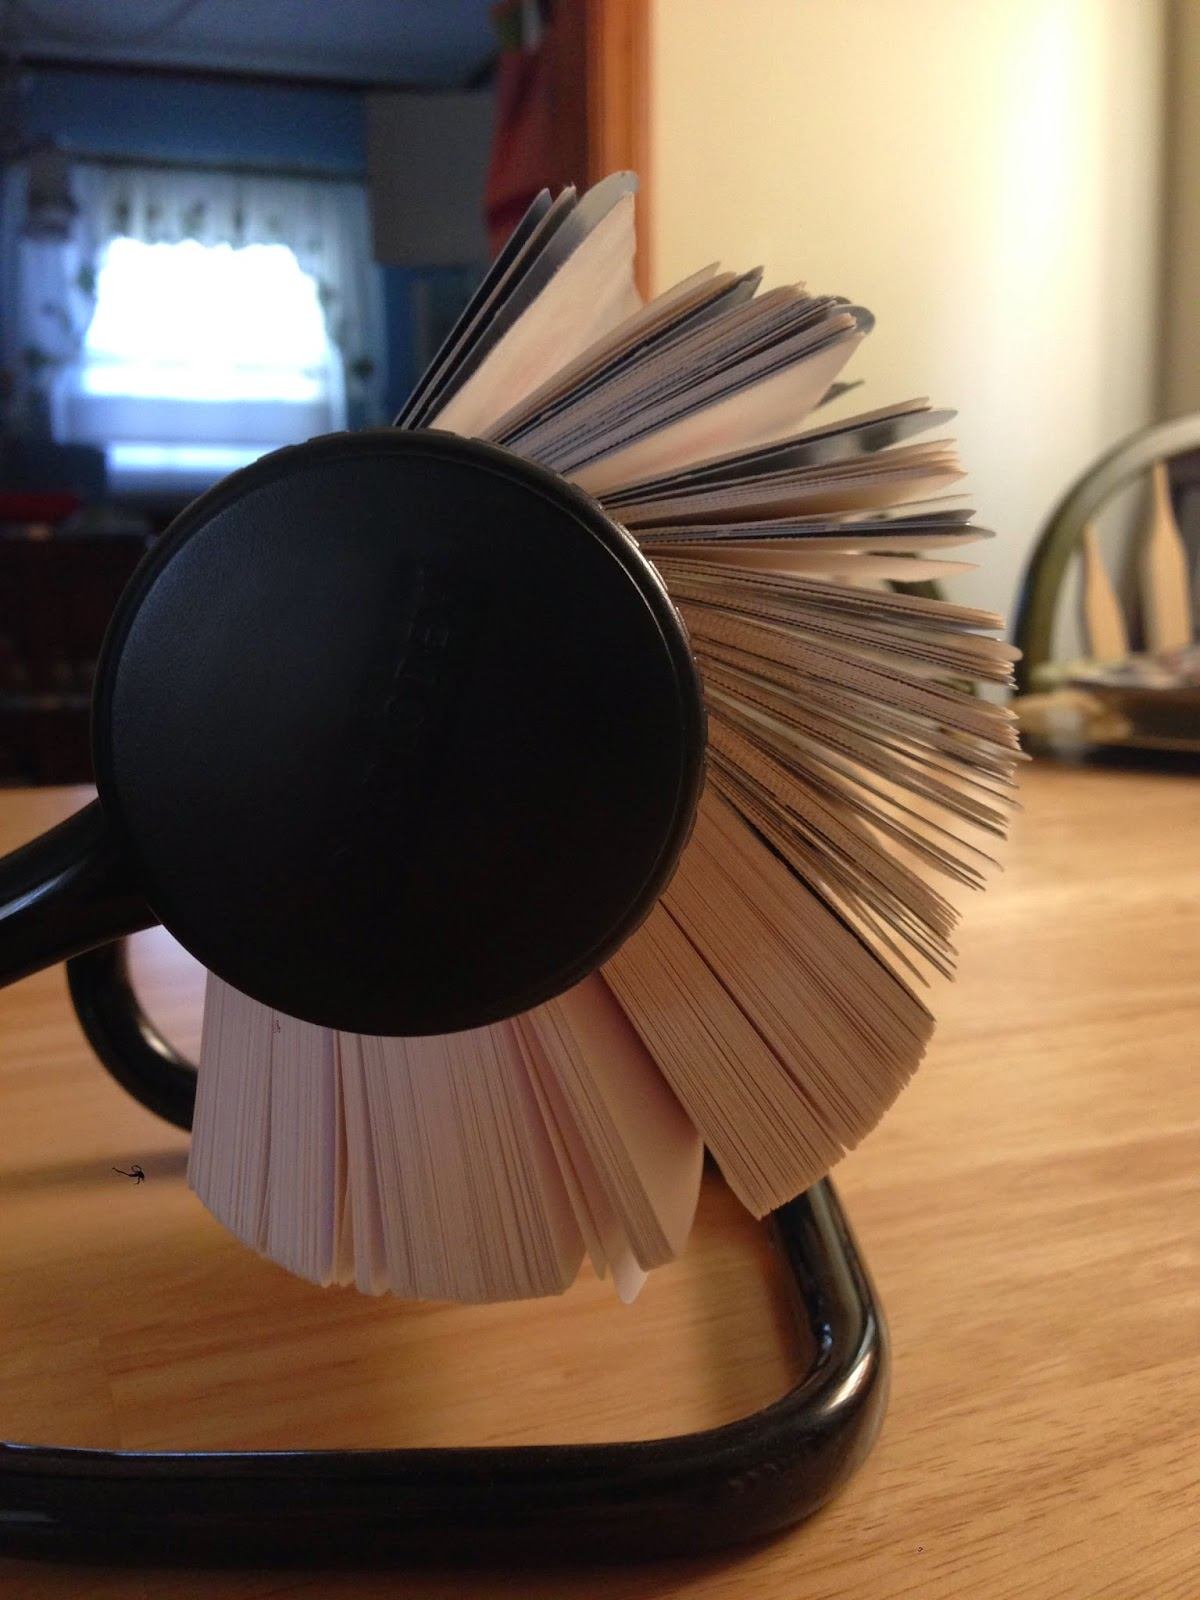 has anyone ever used a rolodex for a craft project